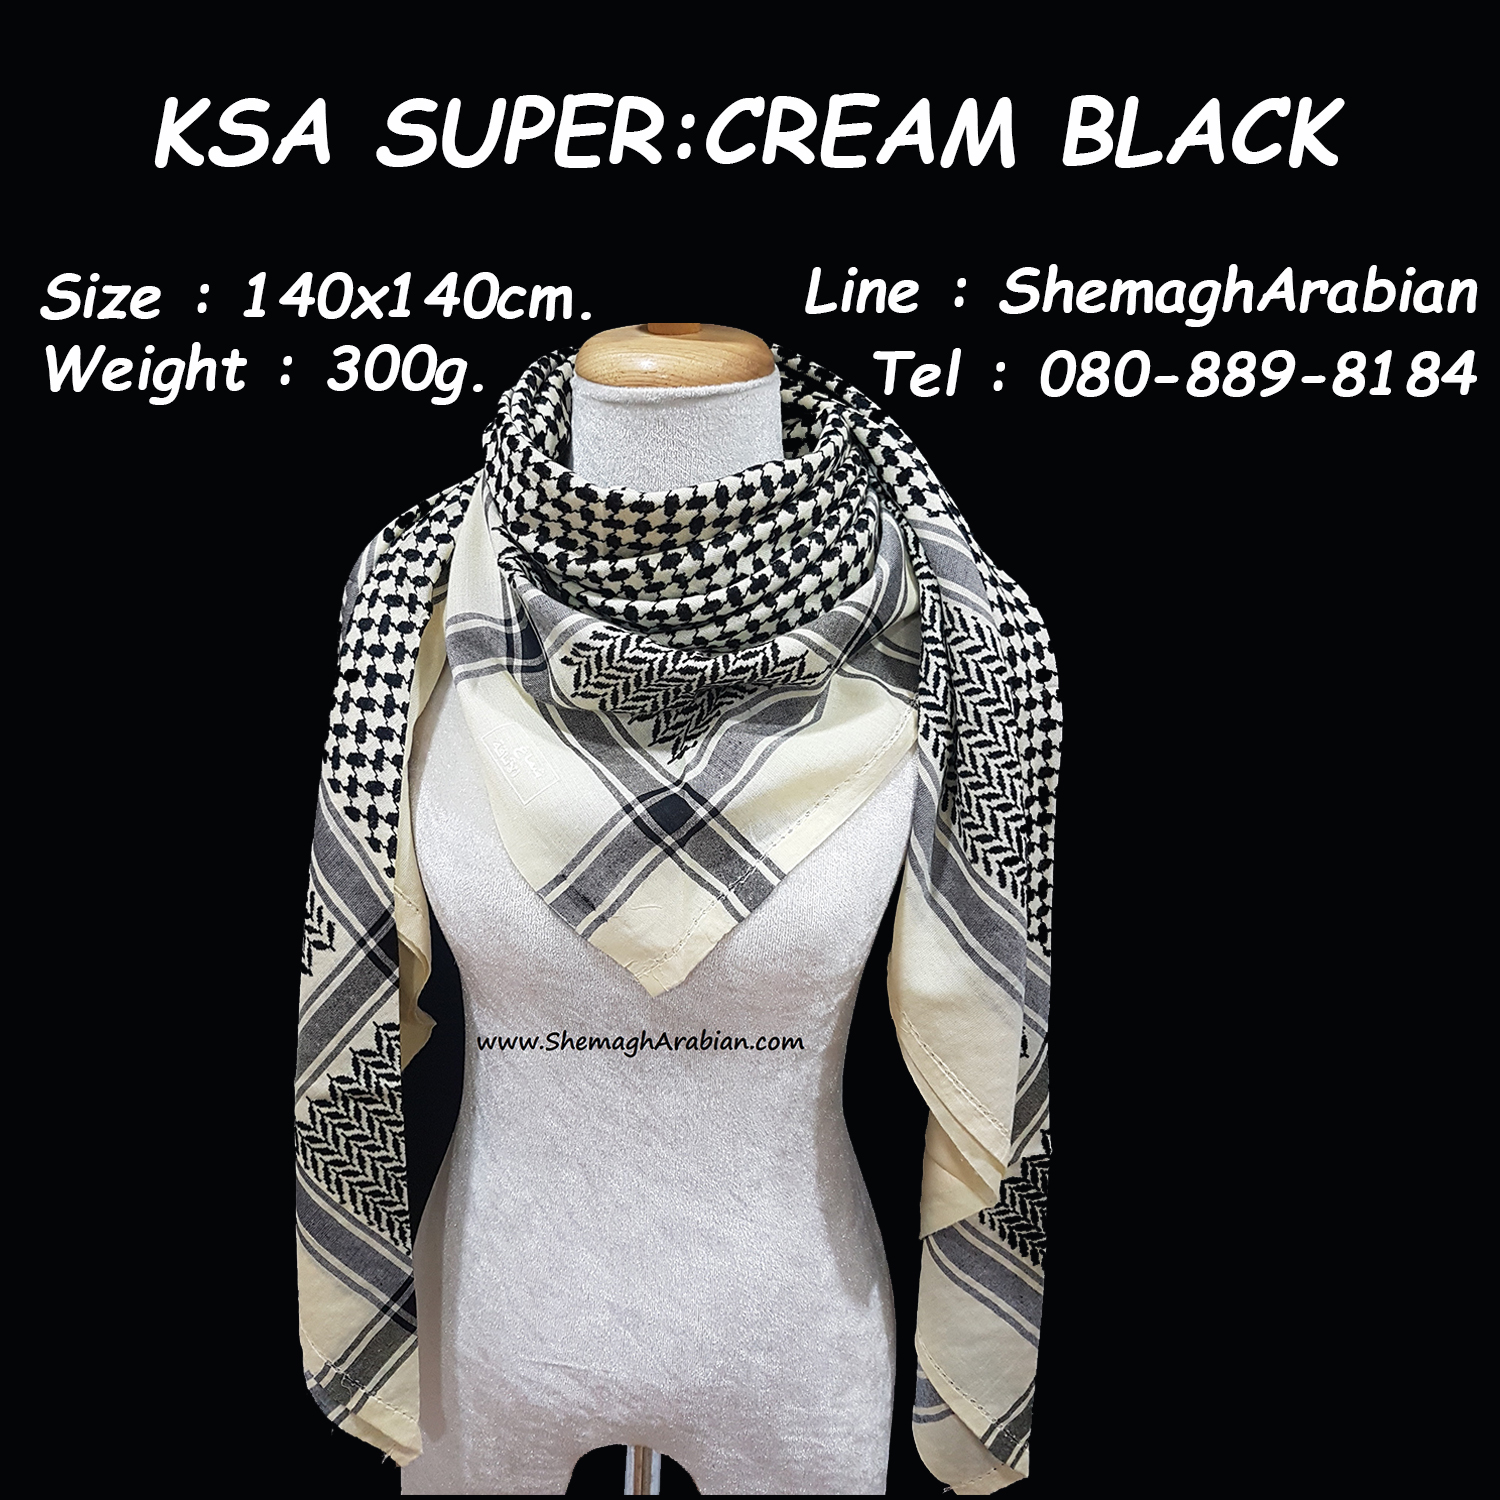 KSA SUPER : CREAM-BLACK